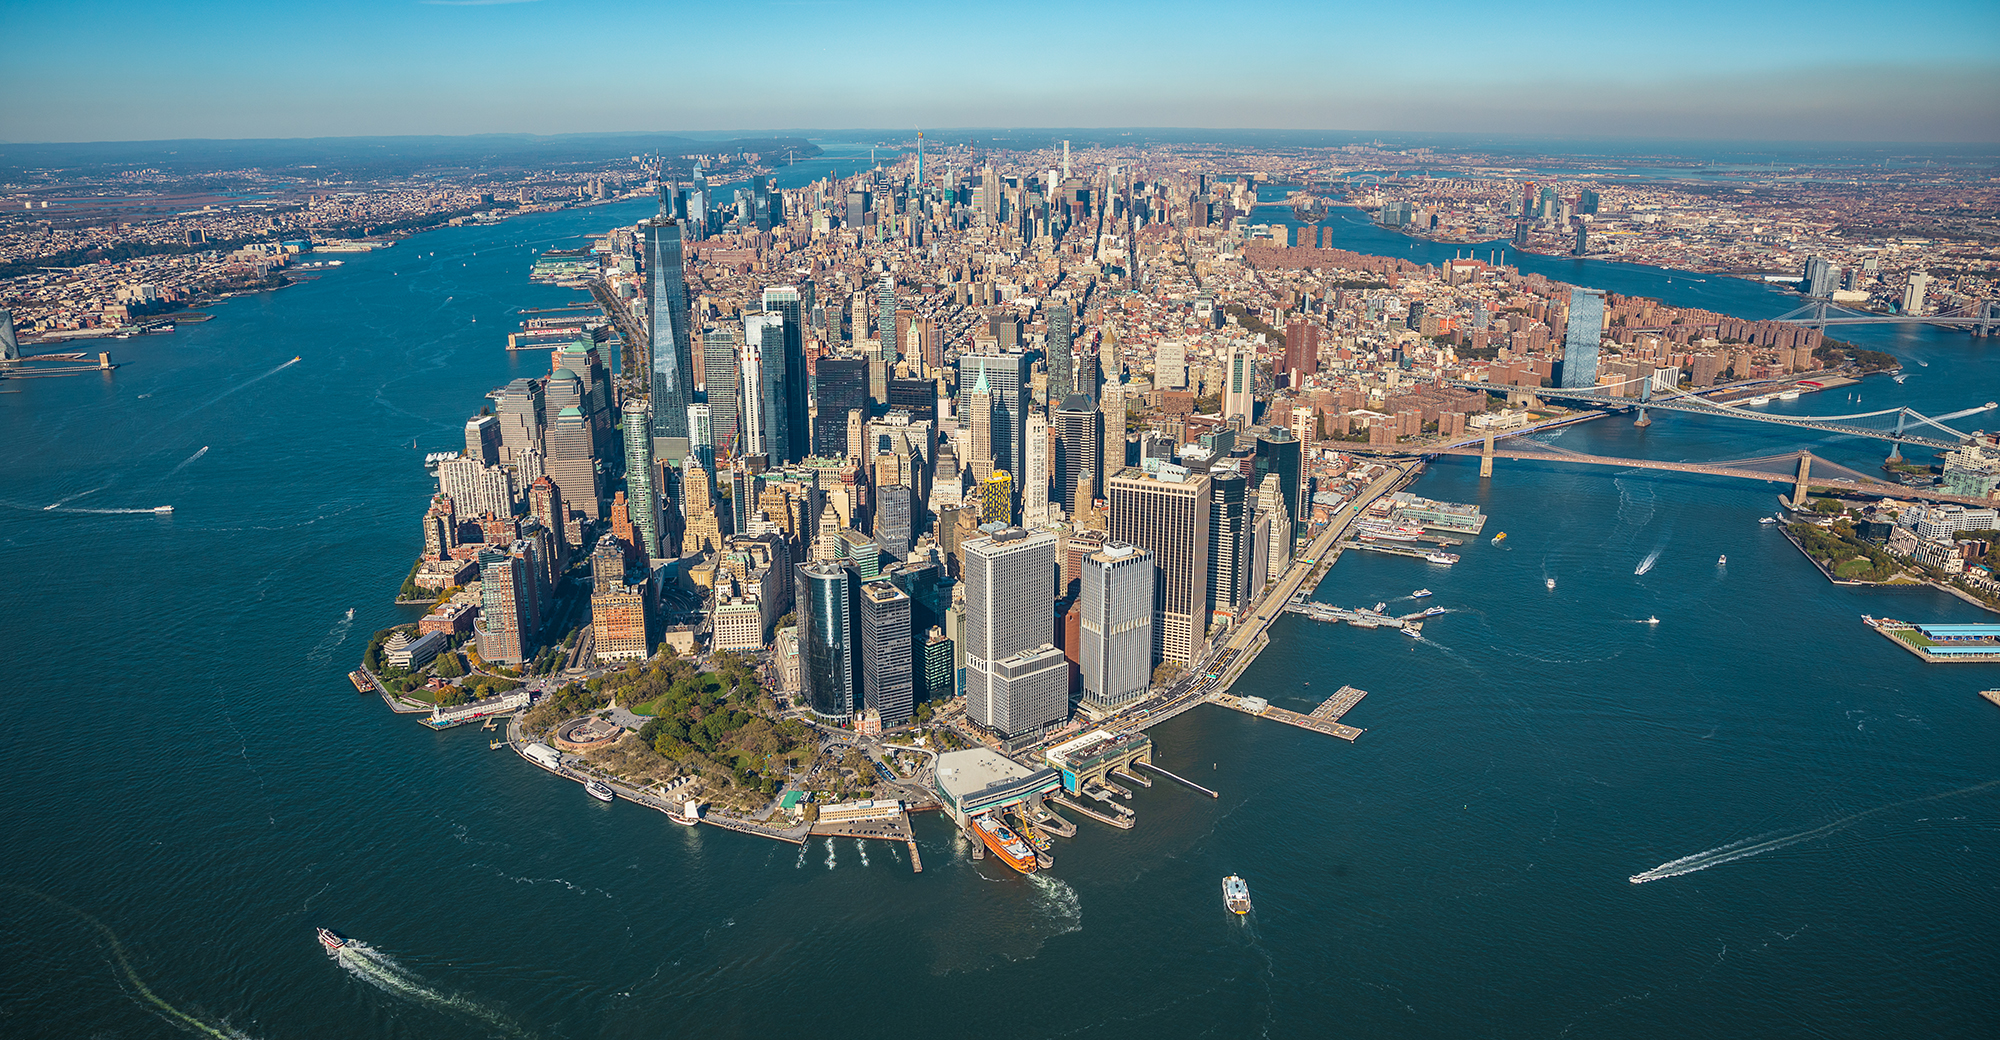 Access here alternative investment news about Rxr Realty Eyes $1B Vehicle To Bet On Tumbled Real Estate Valuations   National Real Estate Investor